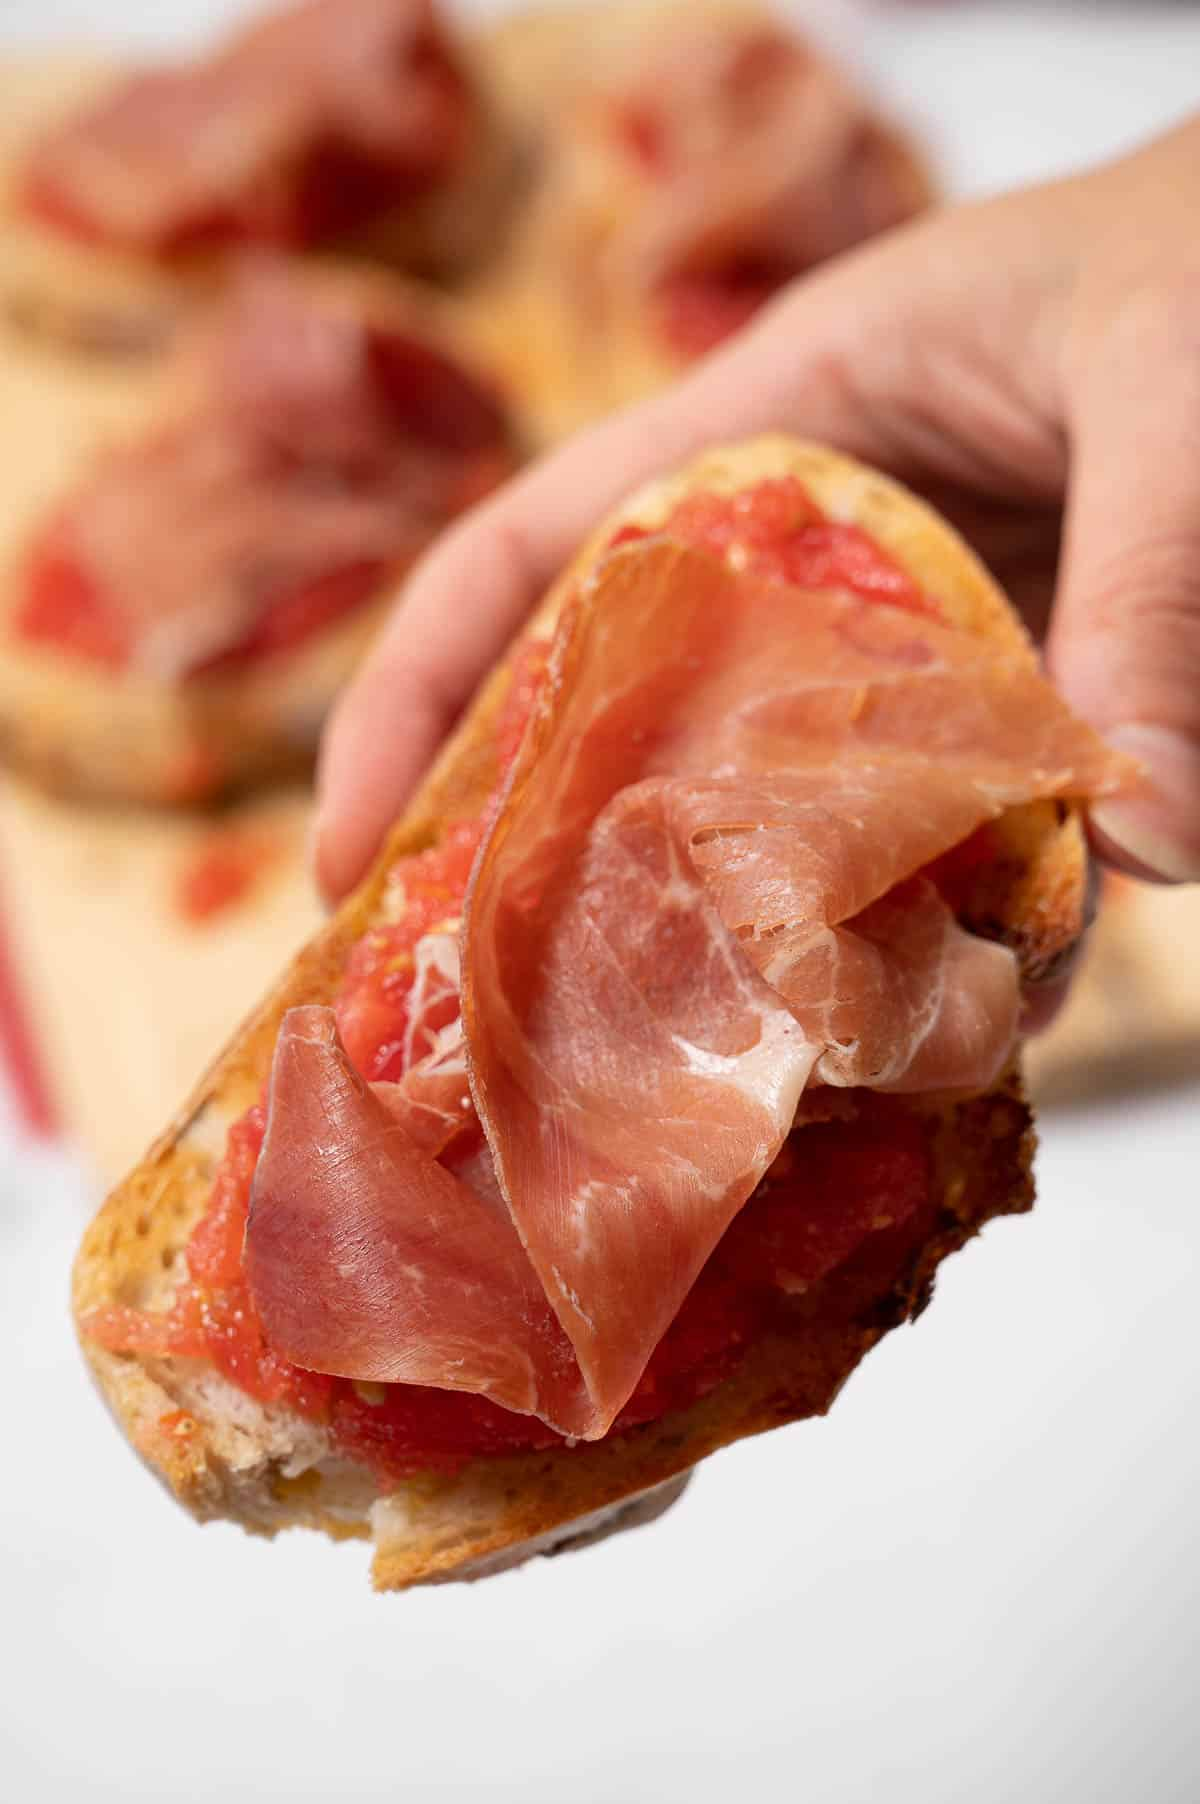 Pan con tomate and jamón - toasted bread with tomato and Serrano ham